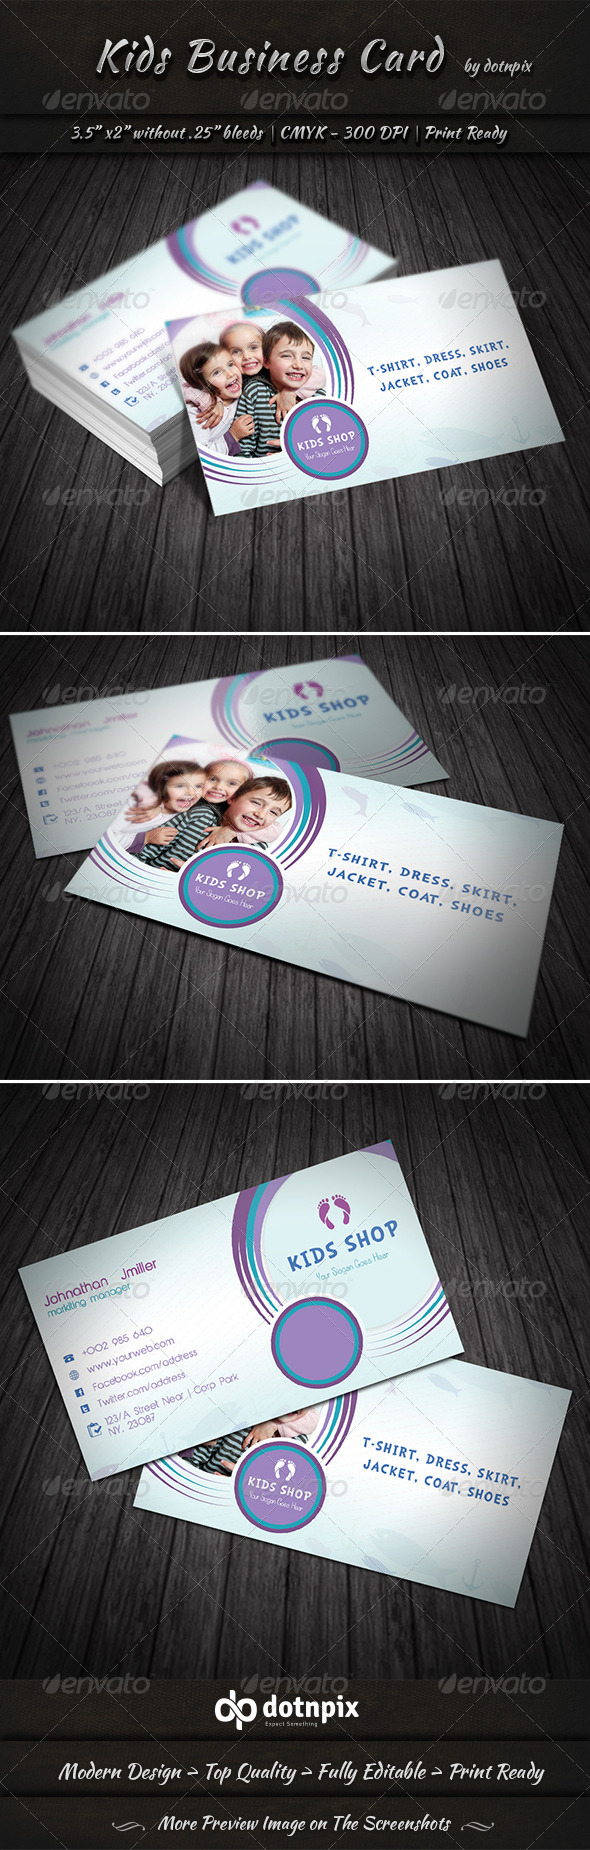 GraphicRiver Kids Business Card 7472215